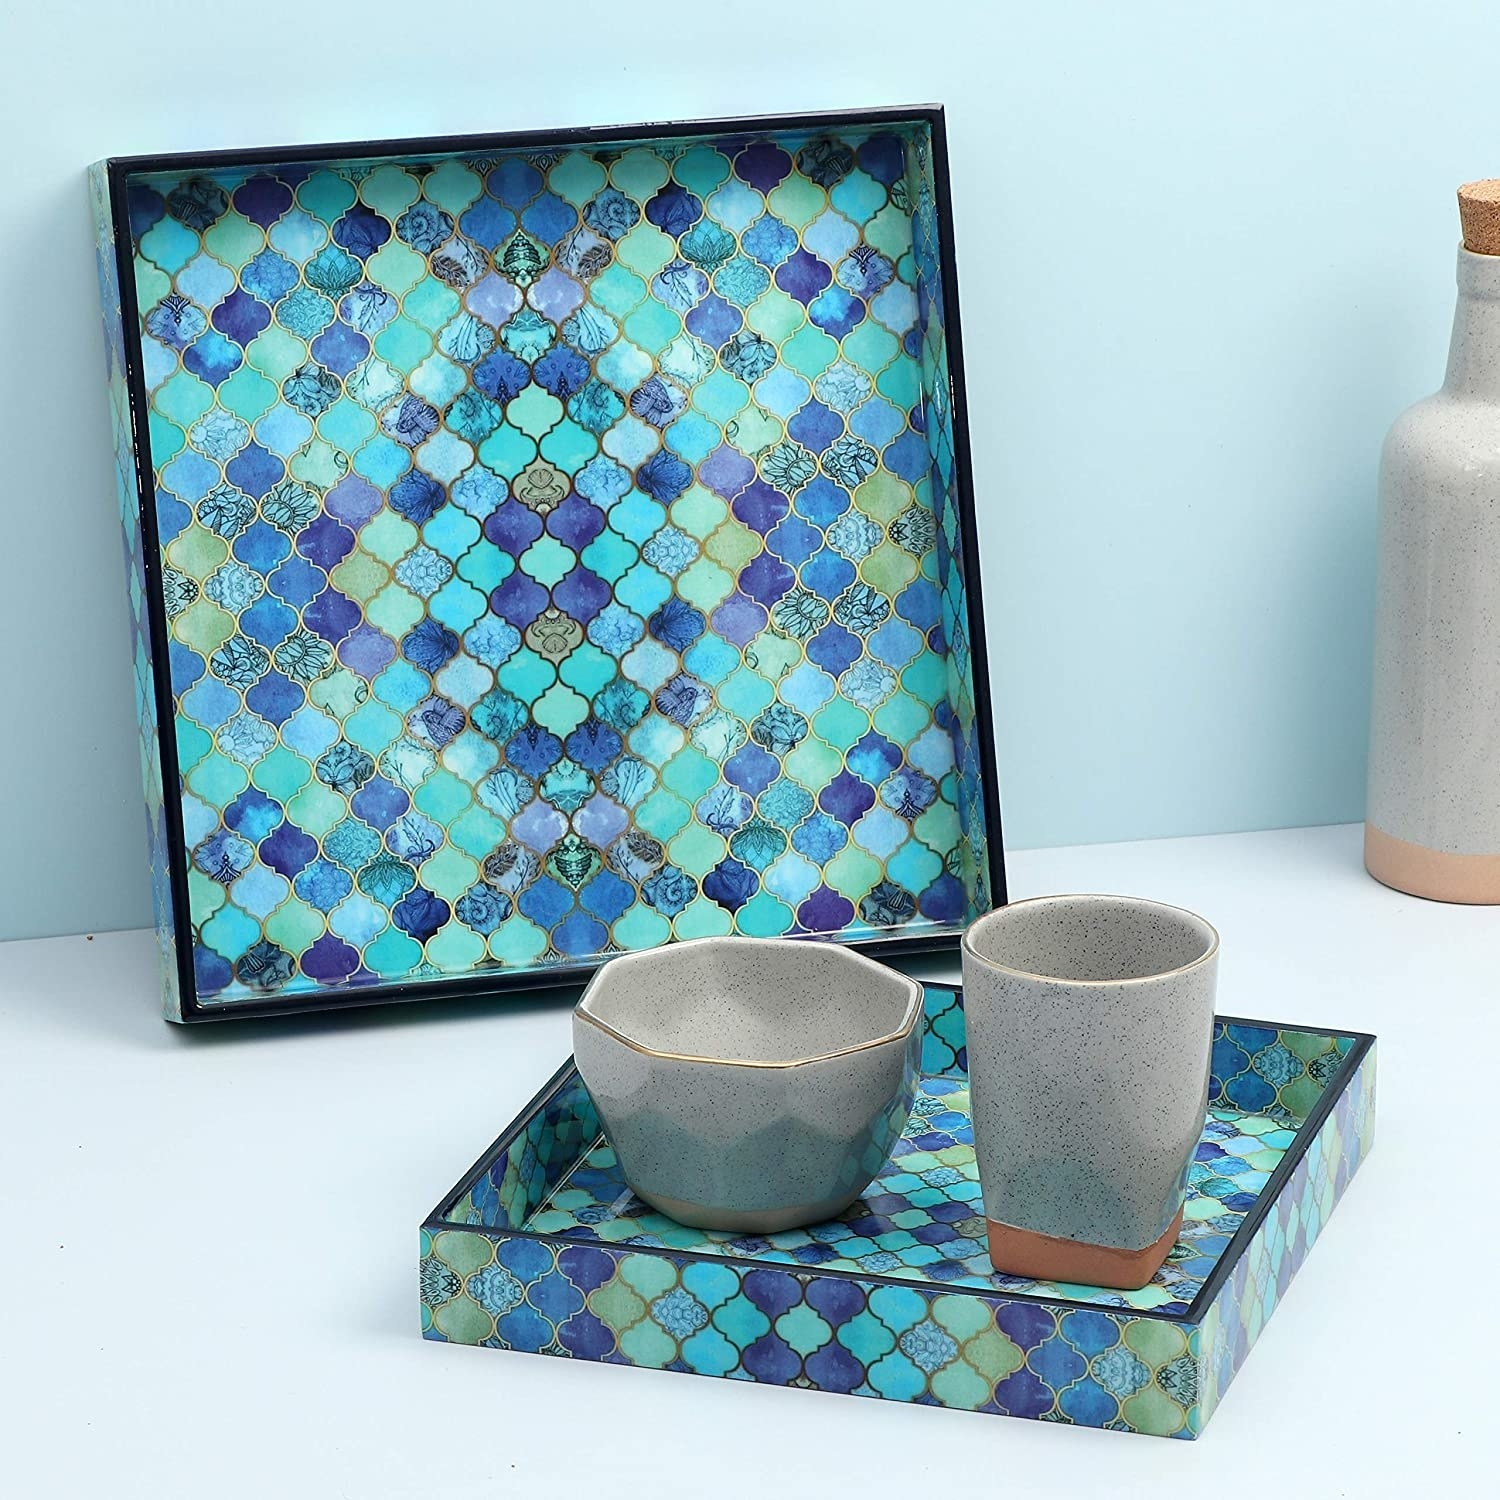 The tray with a bowl and glass on it.